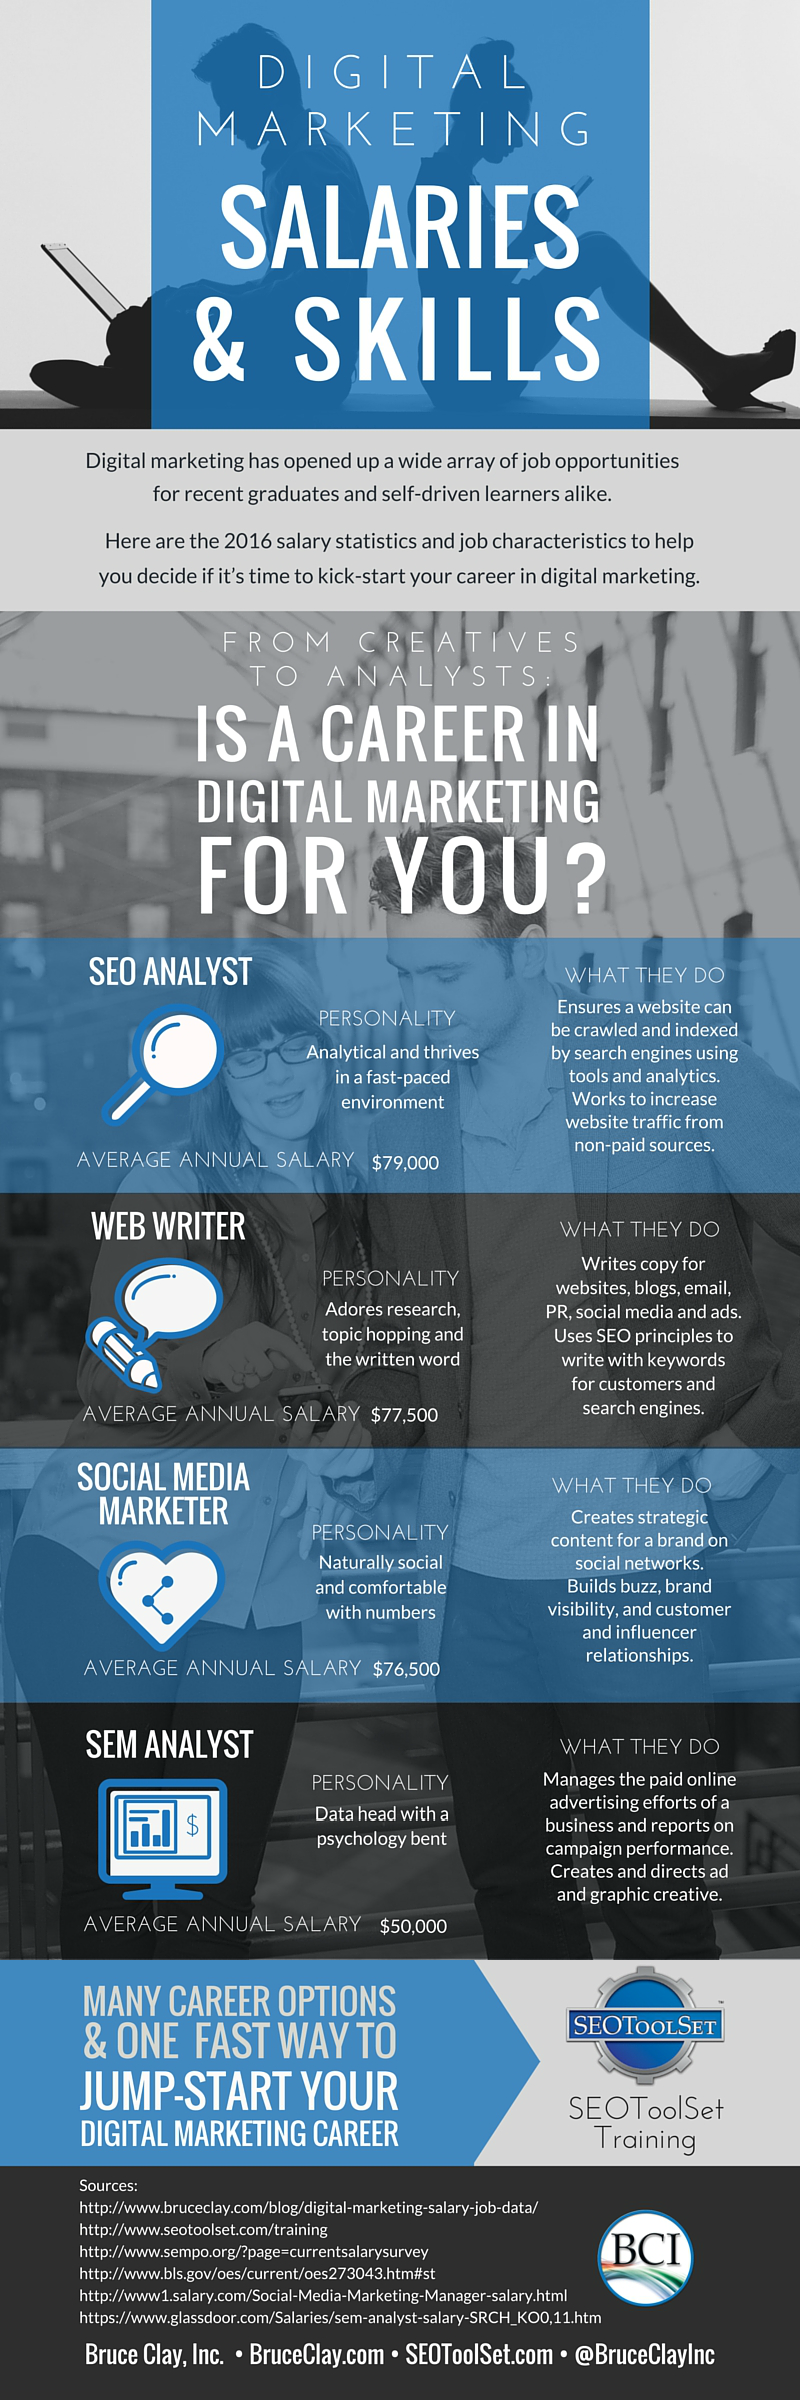 digital marketing jobs and salary infographic